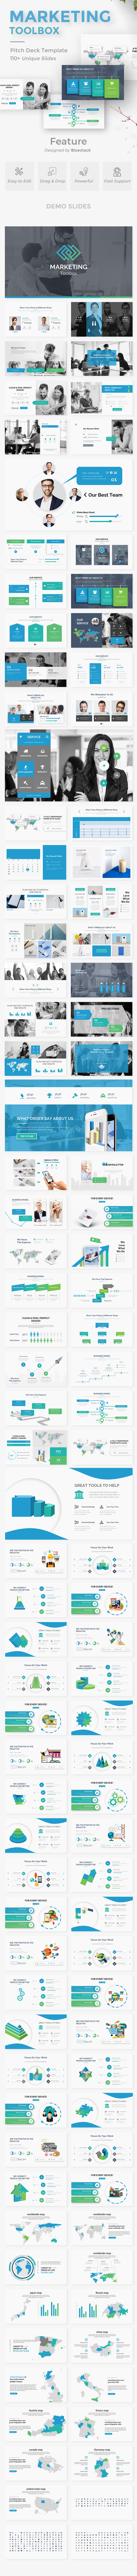 Marketing ToolBox Multipurpose Design Google Slide Template - Google Slides Presentation Templates